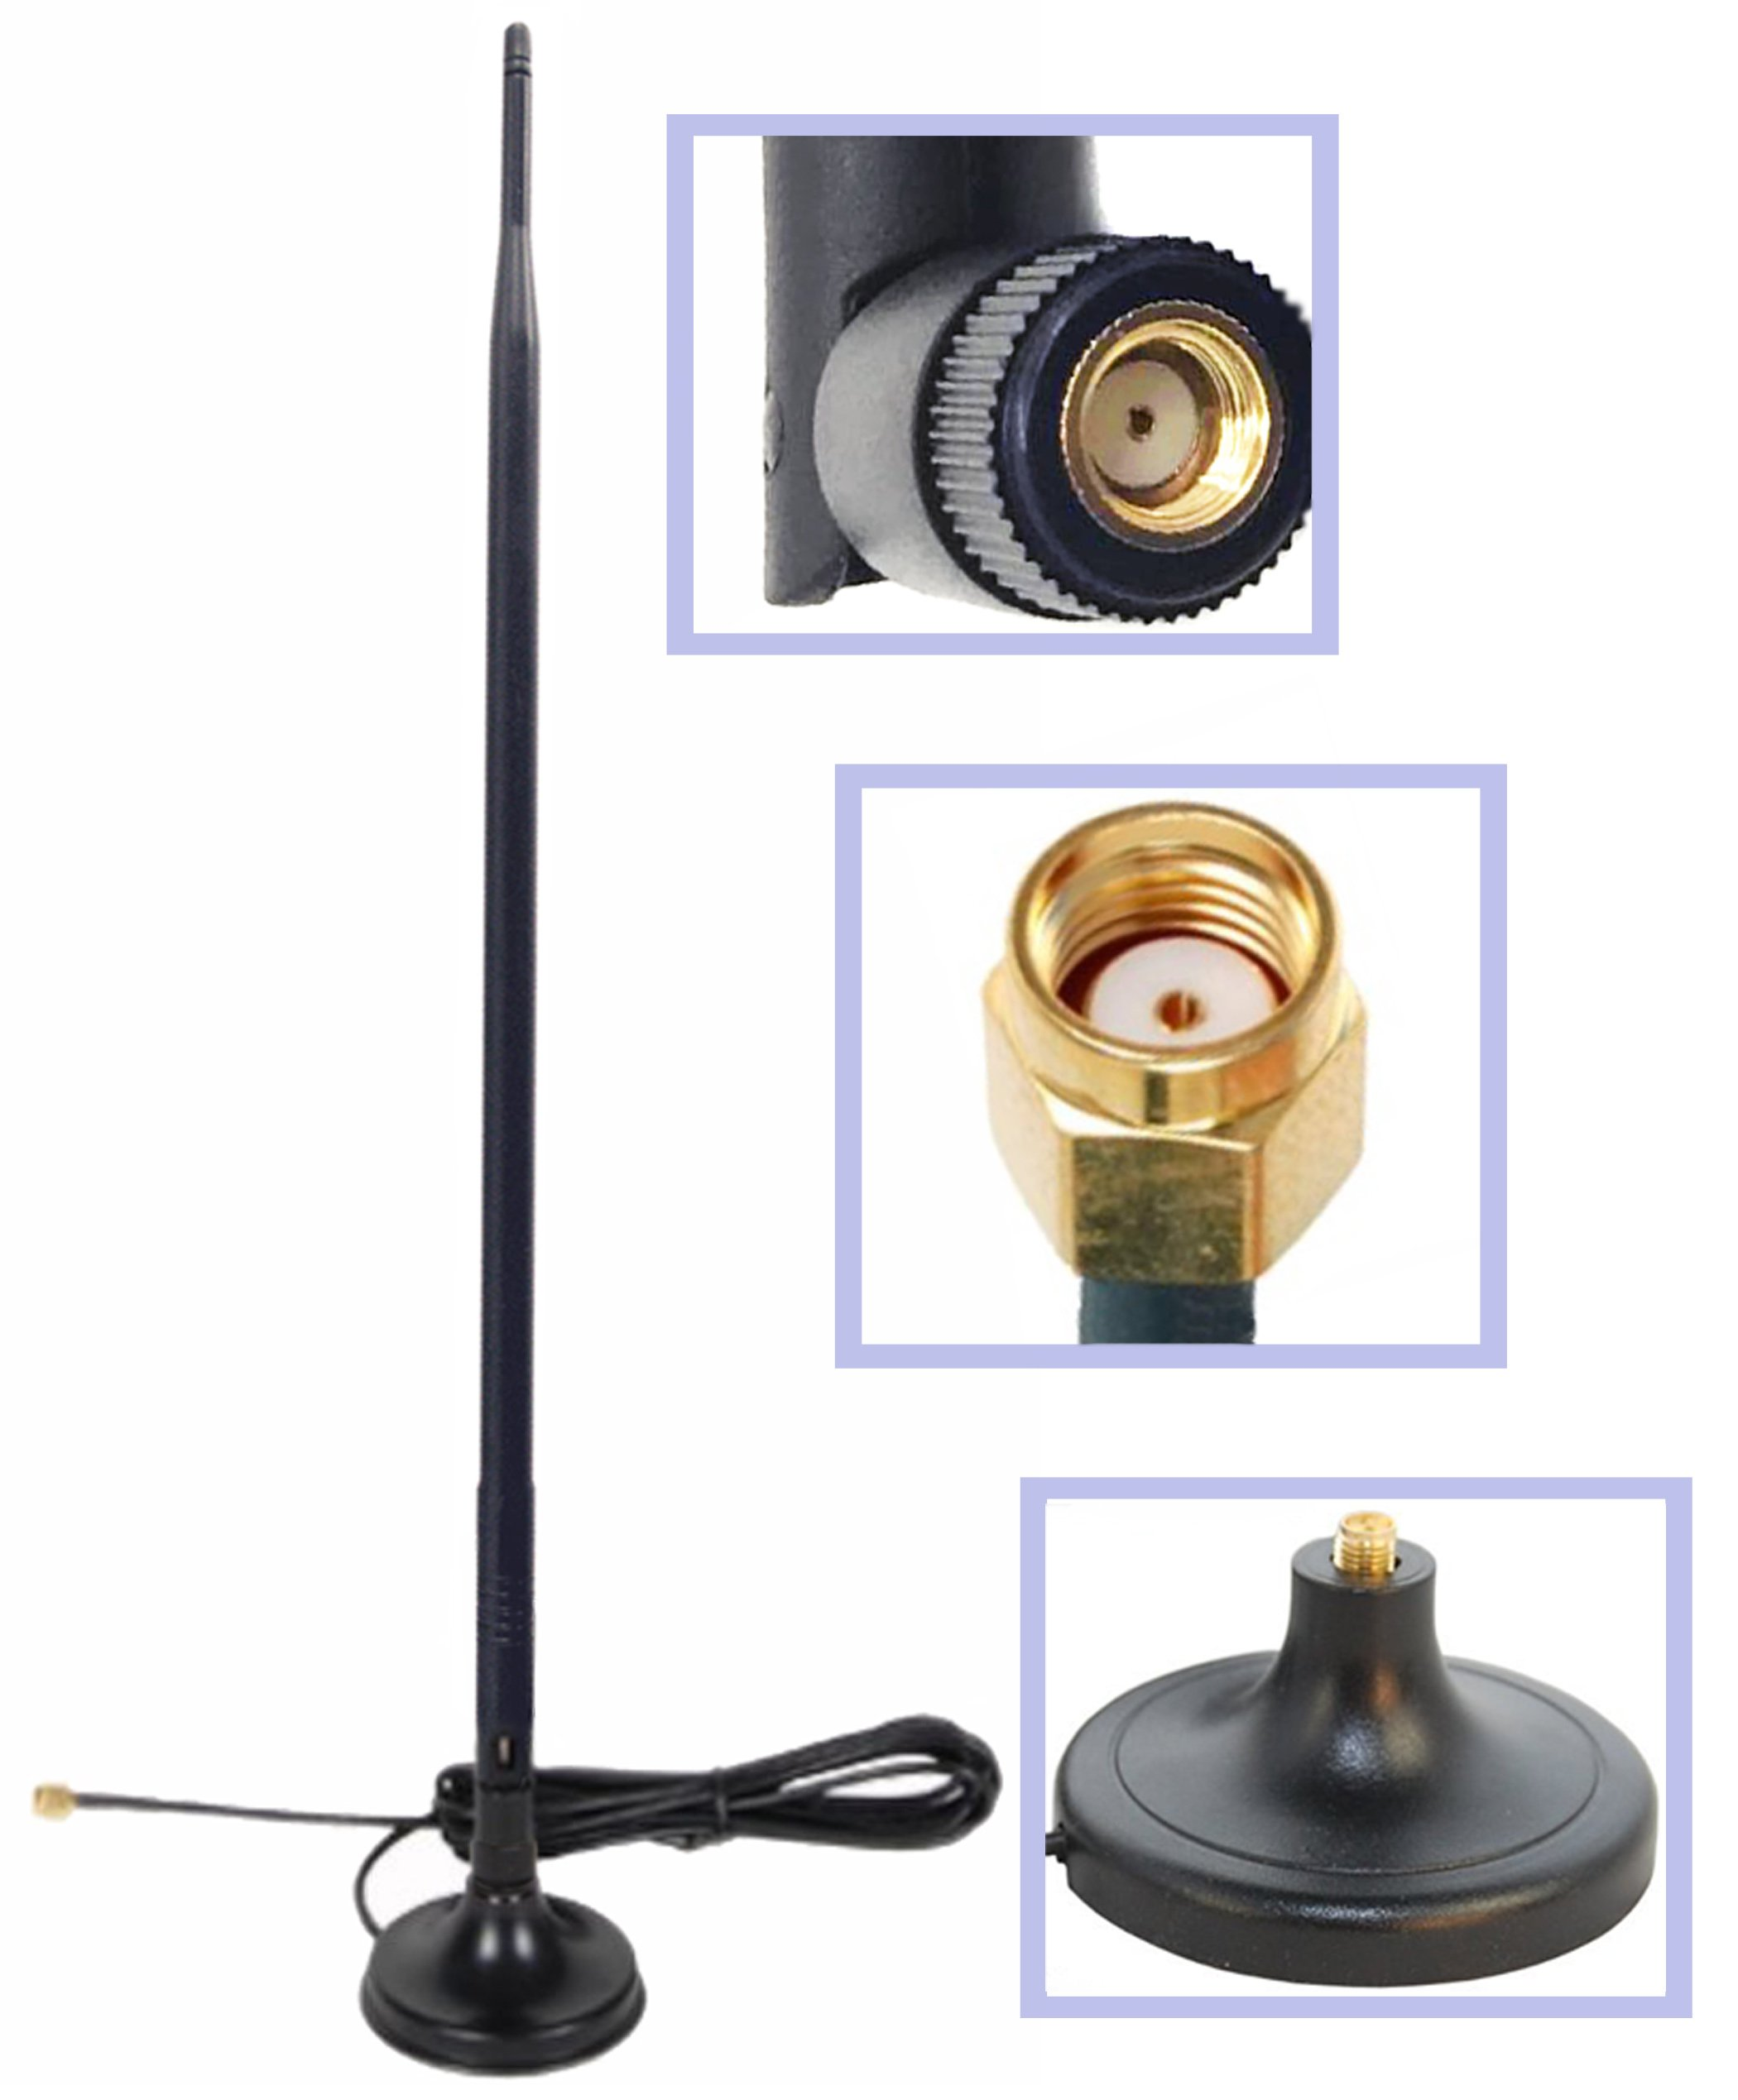 Wi-Fi 9dbi Booster Omni Directional 2.4Ghz-2.5Ghz 802.11n/b/g Antenna RP-SMA Male on Magnetic Base (19,5''/50cm RG174 Coaxial Low Loss Cable)